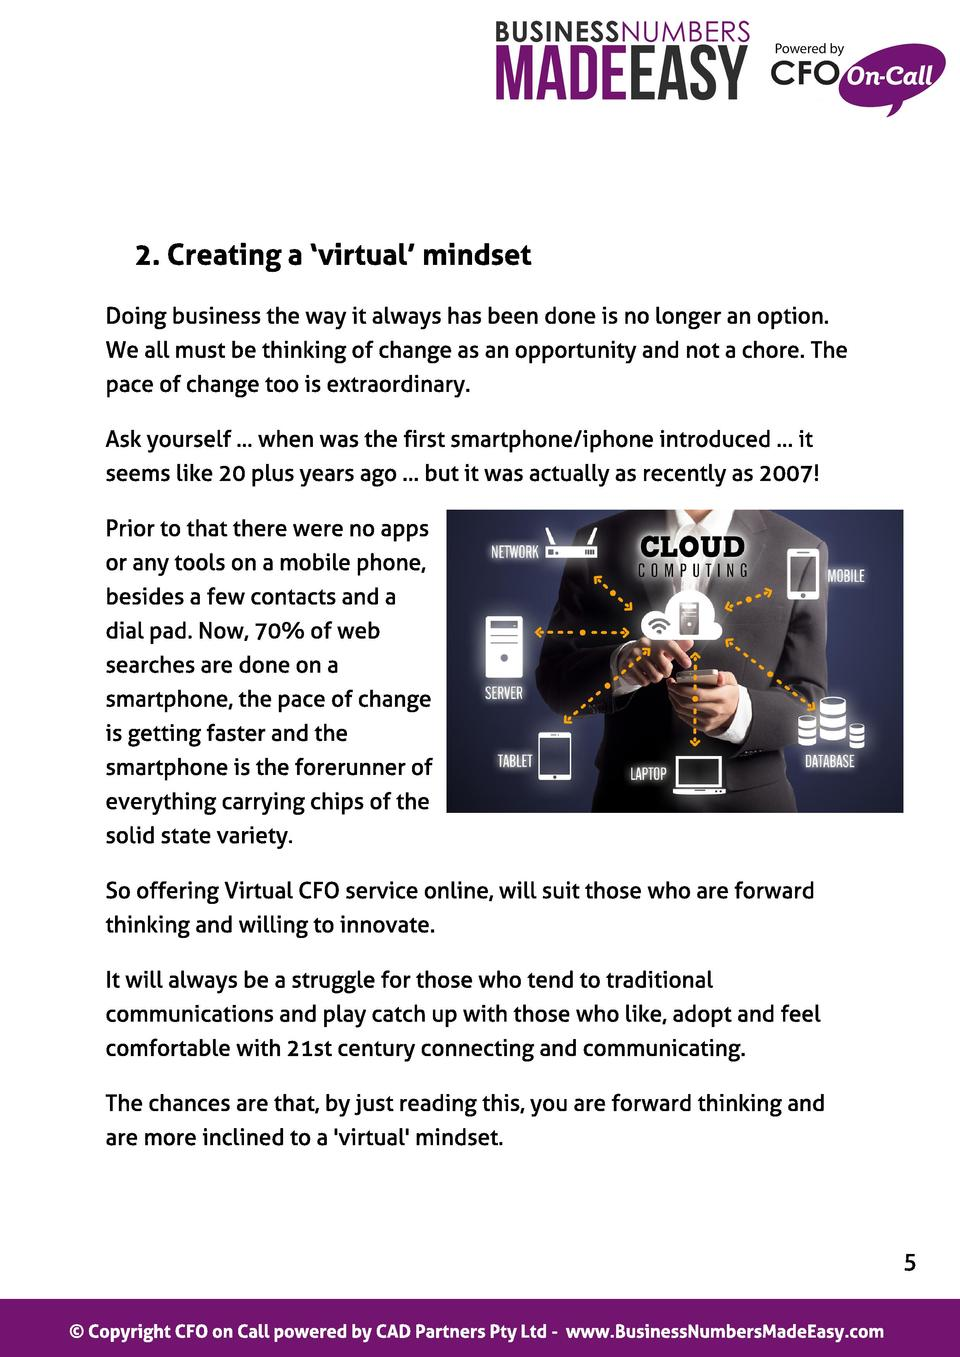 2. Creat ing a  virt ual  mindset Doing business the way it always has been done is no longer an option. We all must be th...